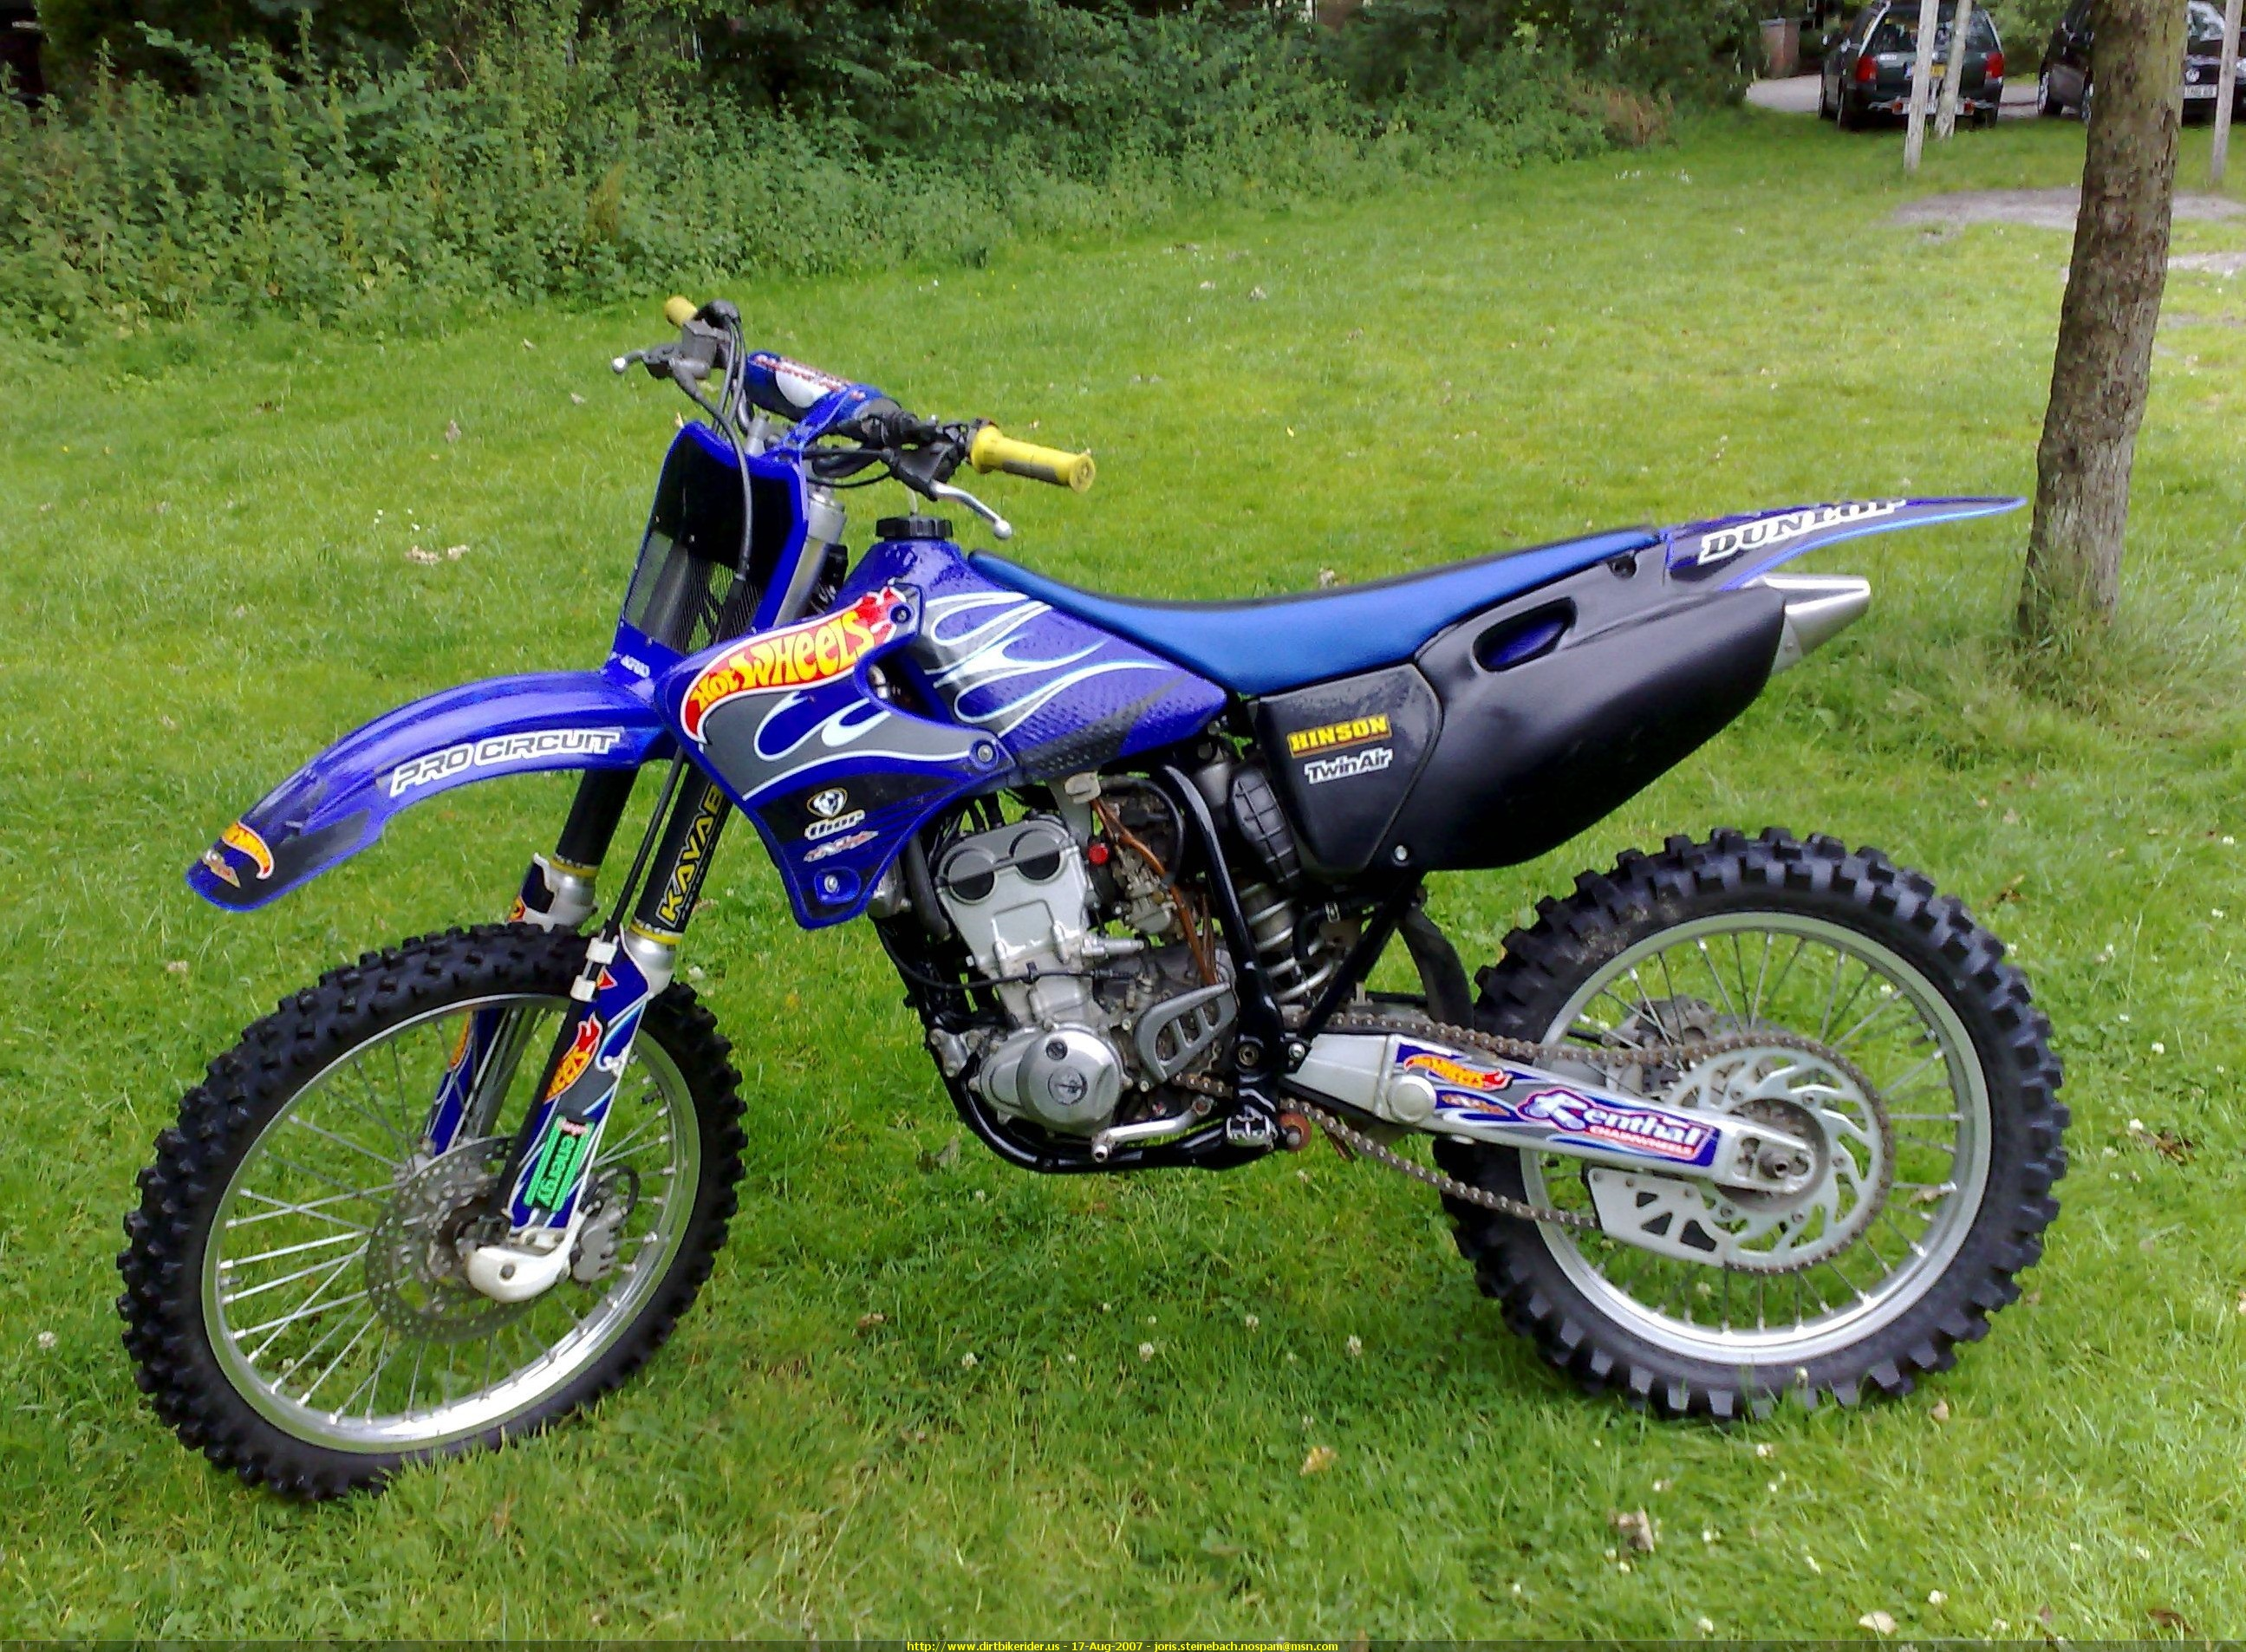 2002 yamaha yz 250 f pics specs and information. Black Bedroom Furniture Sets. Home Design Ideas